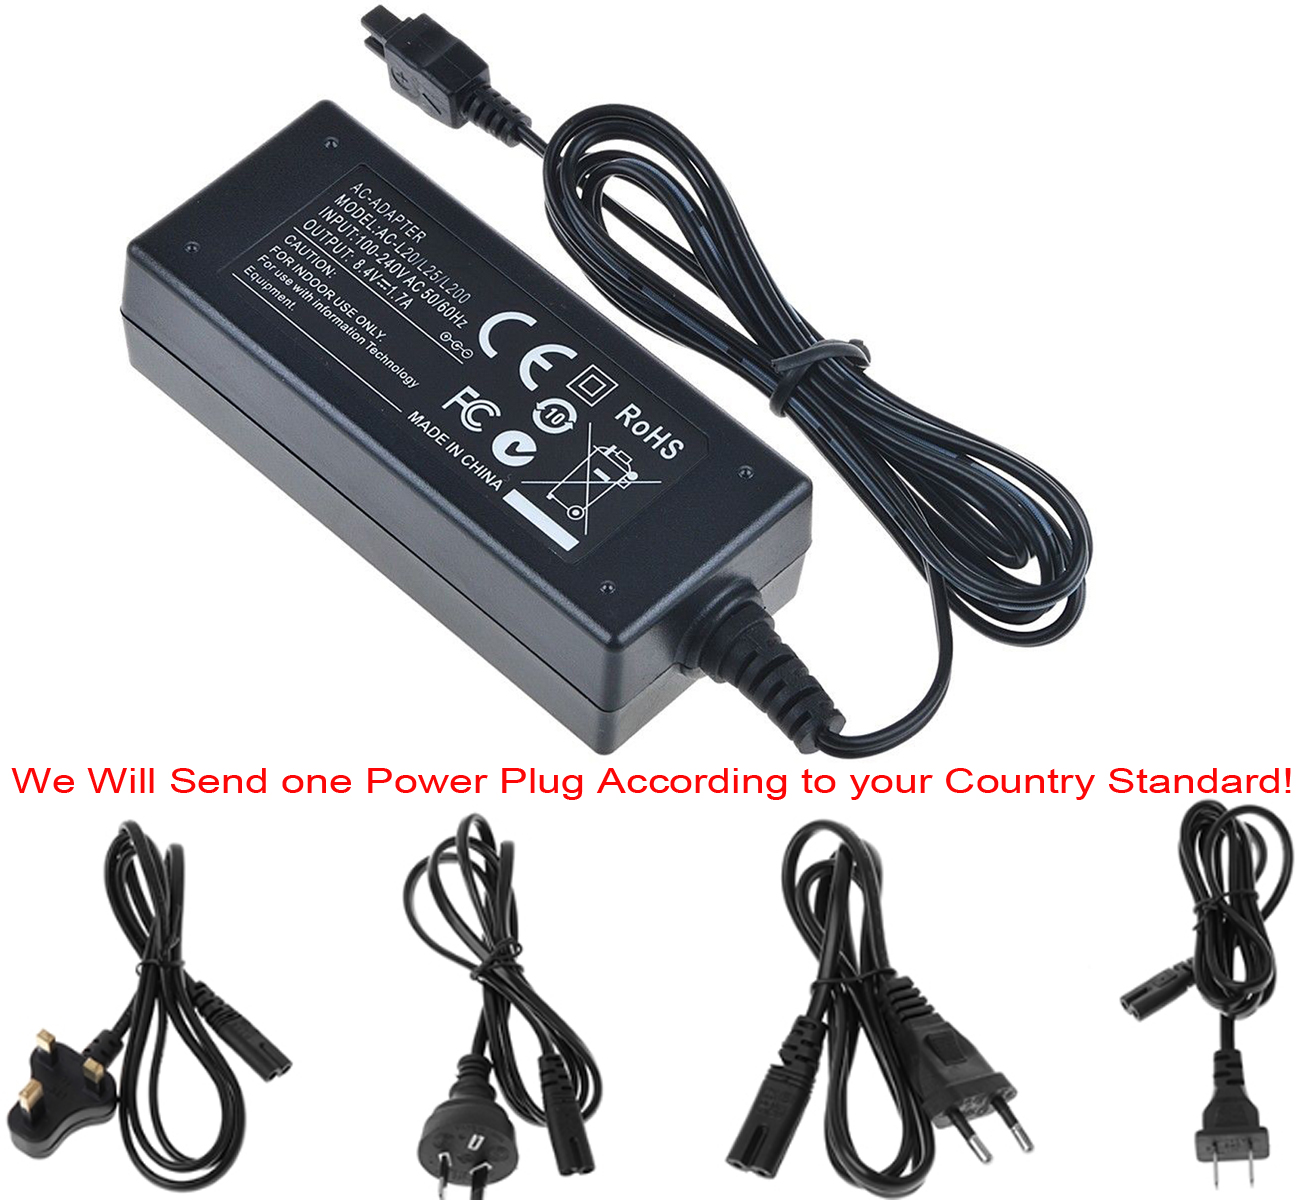 Power-Adapter-Charger Digital-Camera HX200V Sony Cyber-Shot DSC AC for Dsc-hx100v/Dsc-hx200/Dsc-hx200v/.. title=